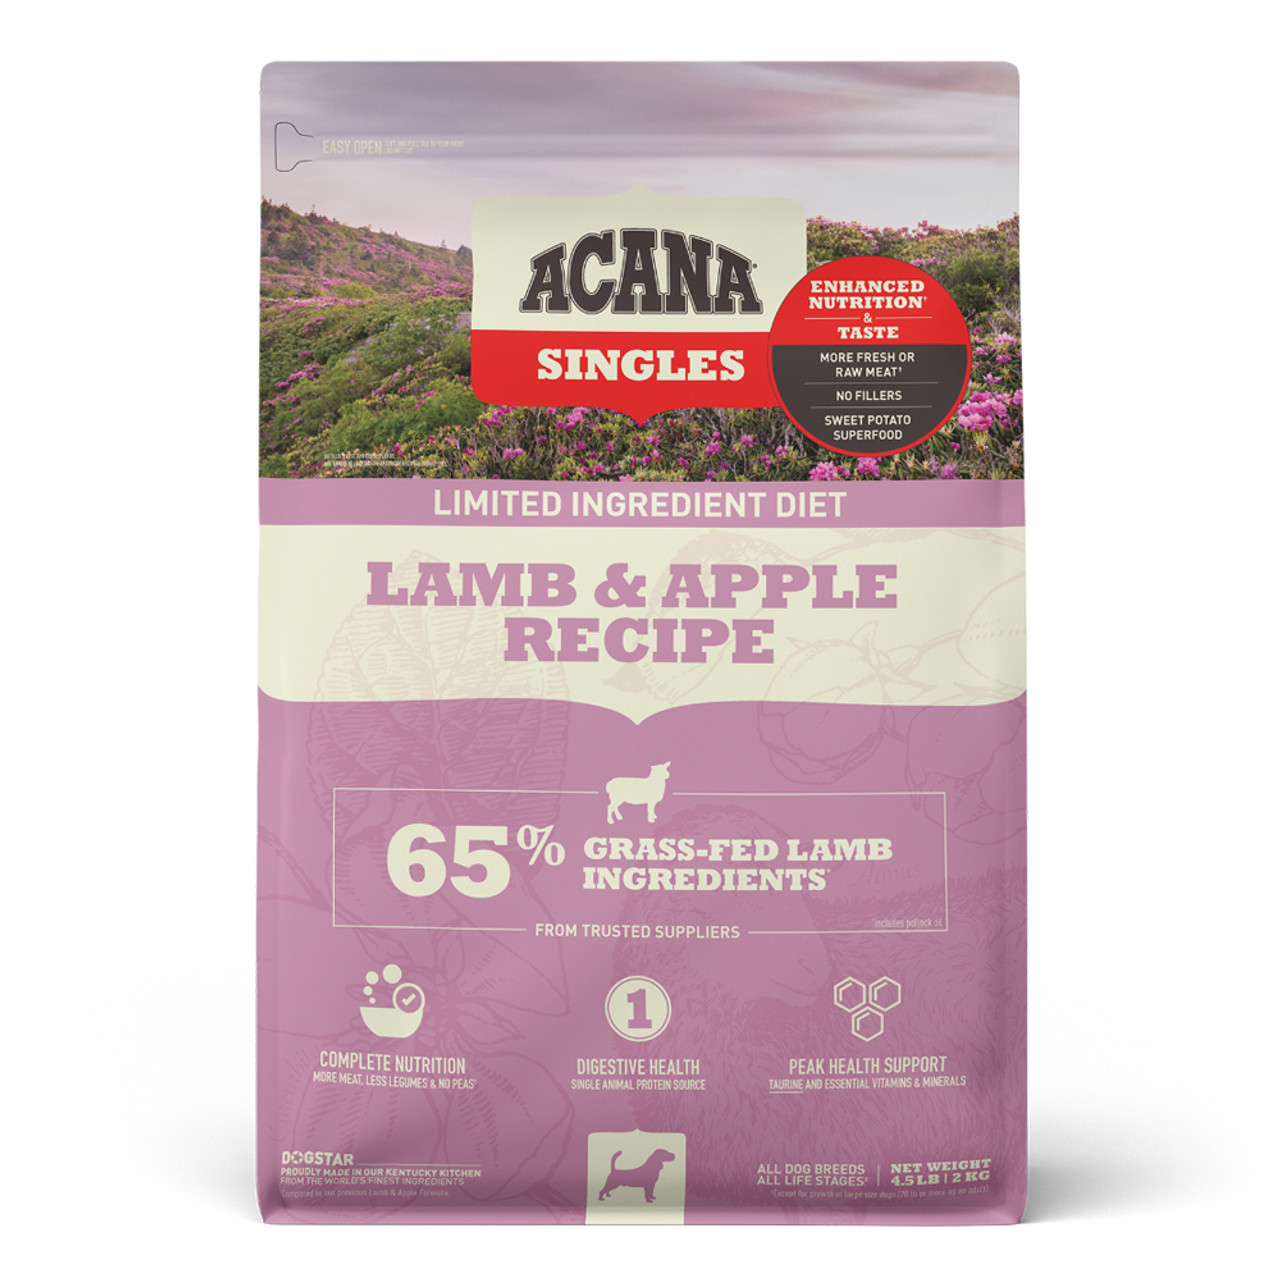 Acana Singles Lamb & Apple Recipe Dry Dog Food